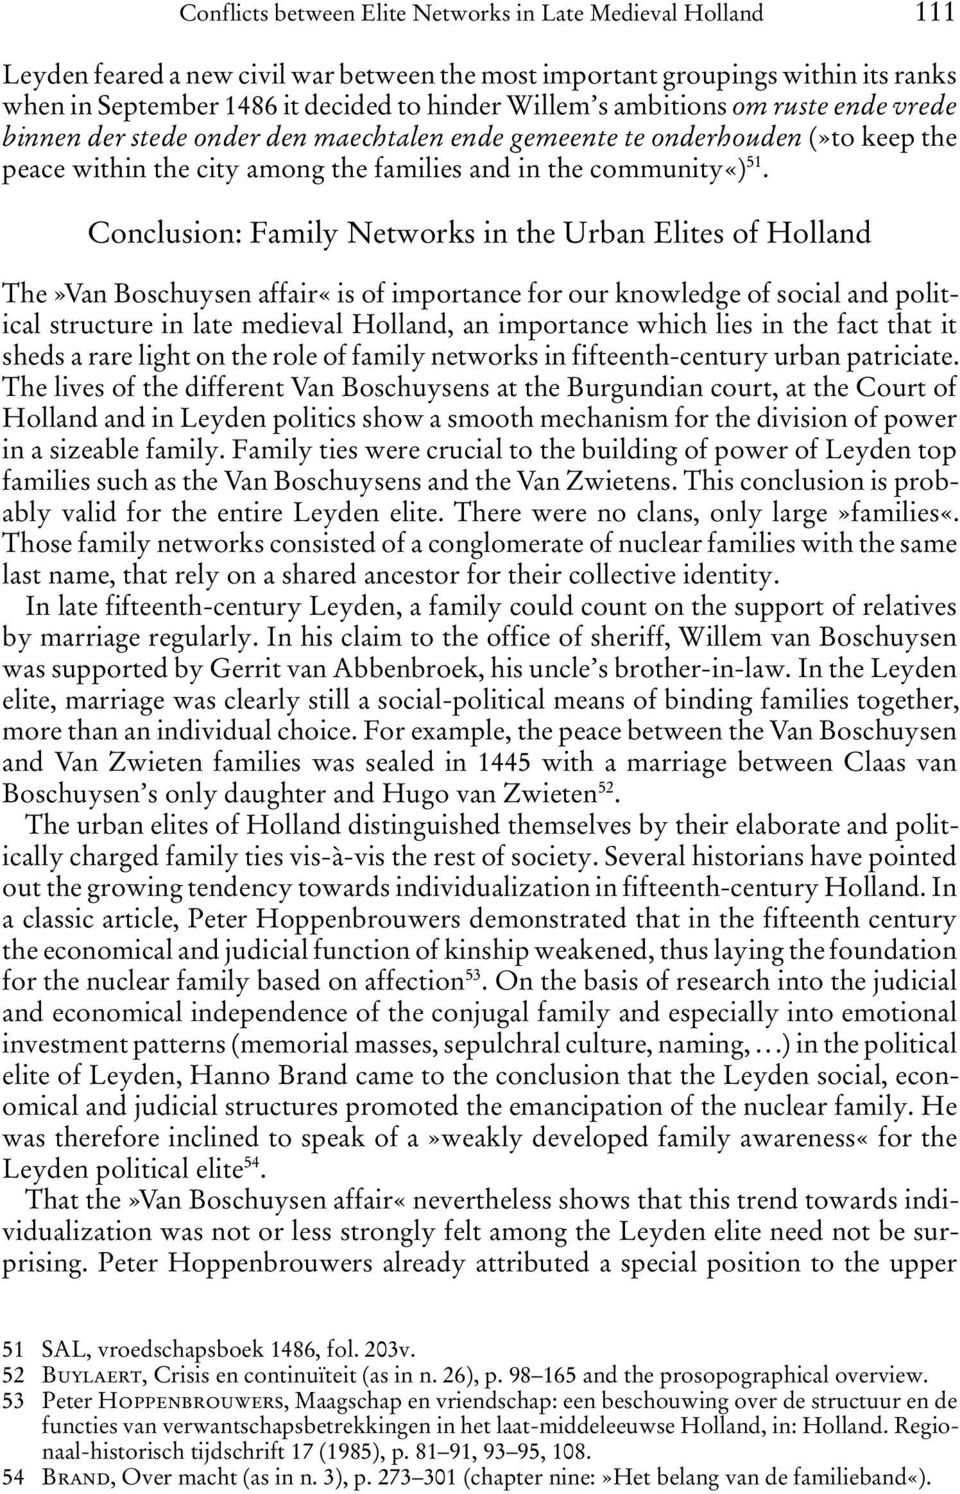 Conclusion: Family Networks in the Urban Elites of Holland The»Van Boschuysen affair«is of importance for our knowledge of social and political structure in late medieval Holland, an importance which